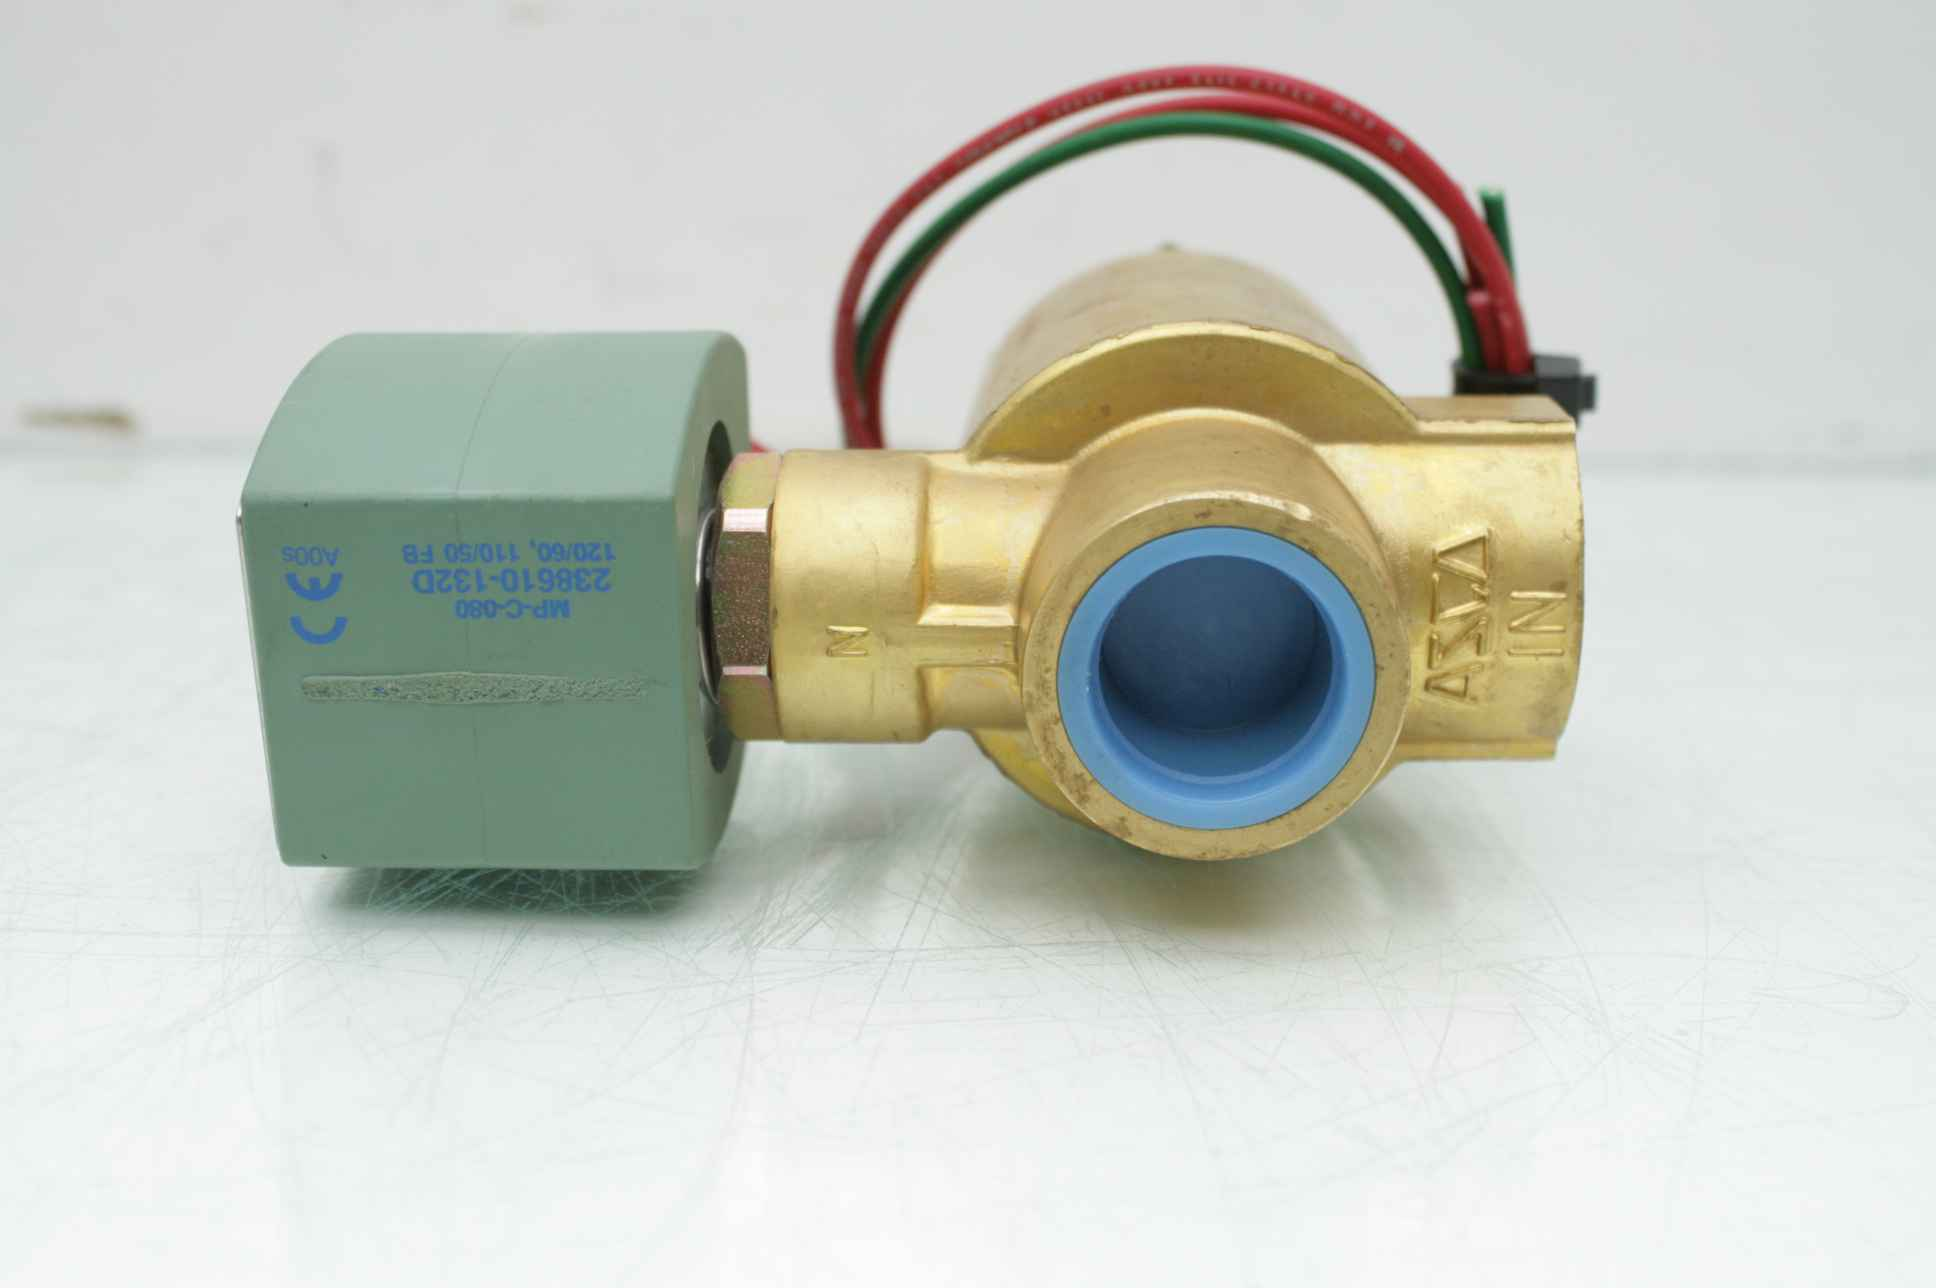 1-1//4 NPT Pilot-Operated Valves NC Two-Way Asco Red-Hat 8210G8,24 VDC Brass F 24 VDC